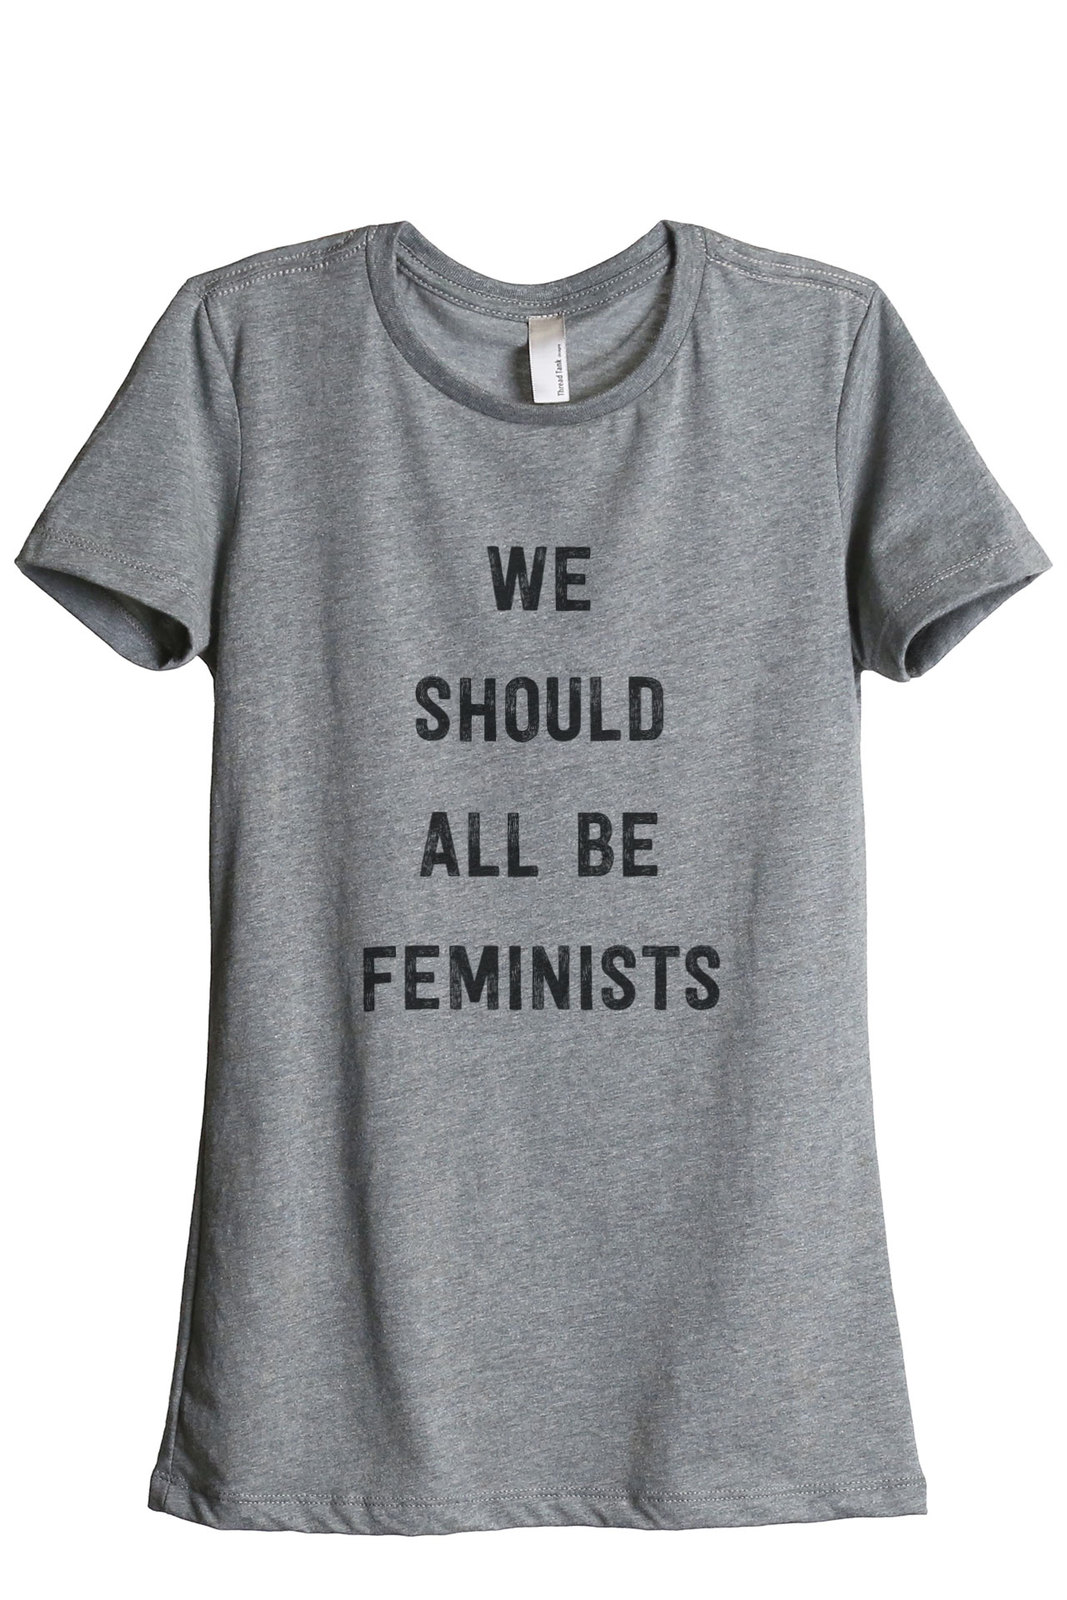 Thread Tank We Should Be Feminists Women's Relaxed T-Shirt Tee Heather Grey